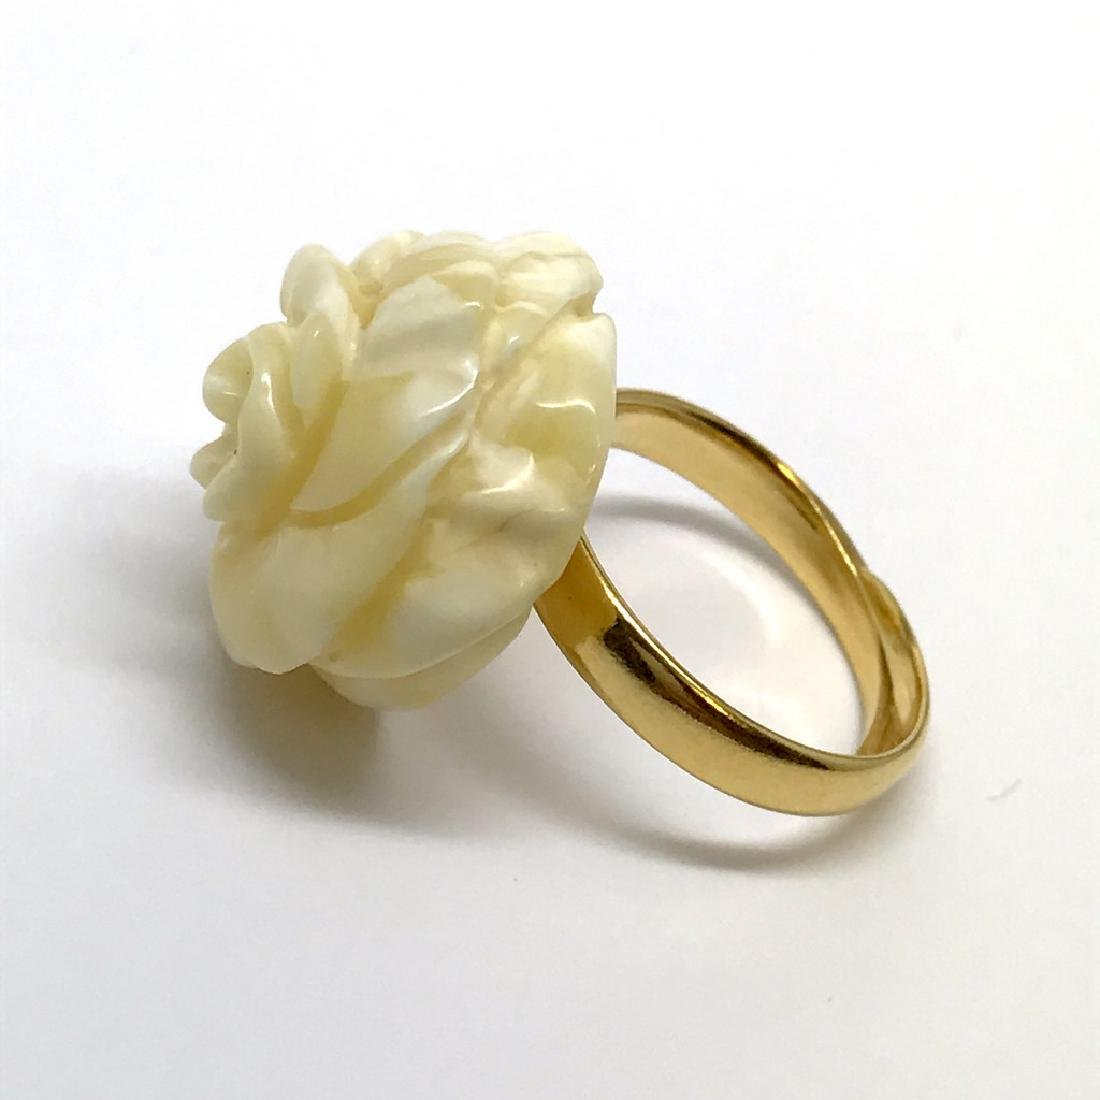 Old silver ring with carved white Baltic amber rose - 2